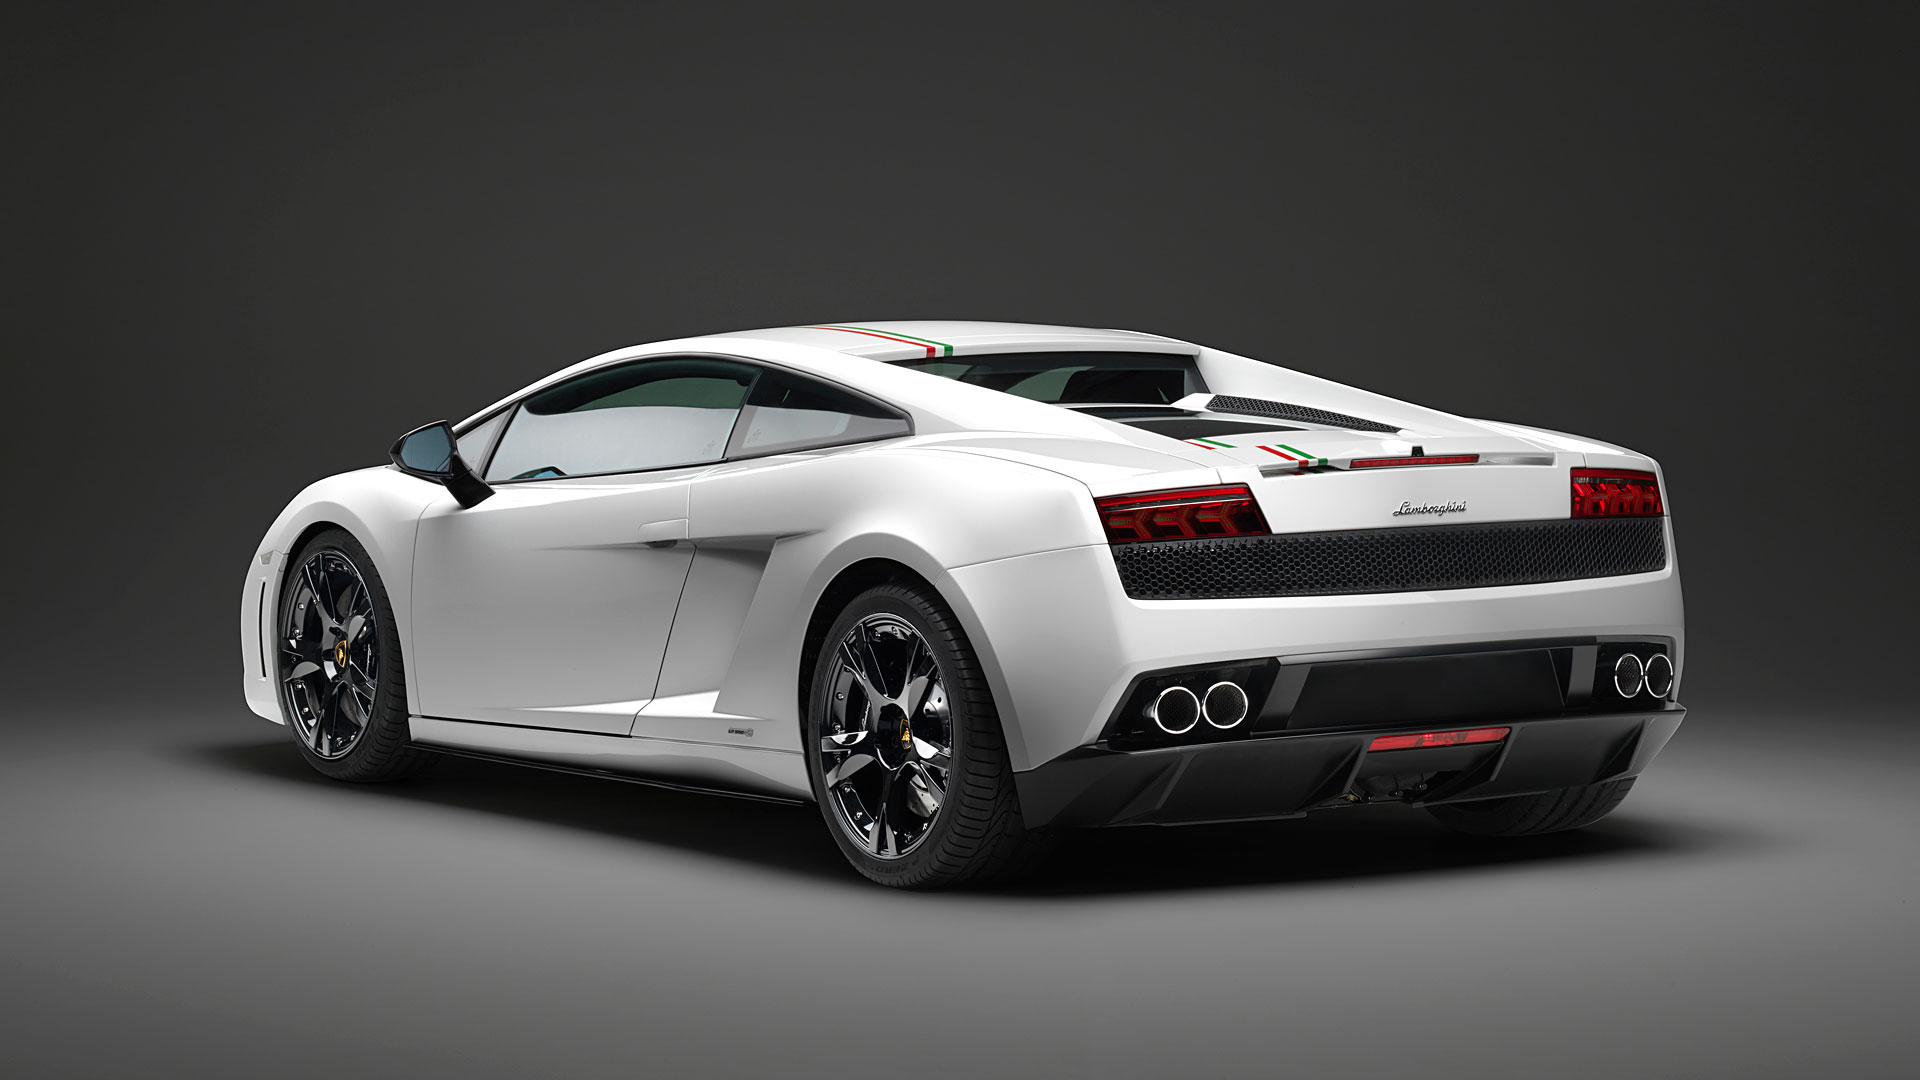 Rear 3/4 Angle Photo Of A Lamborghini Gallardo LP550 2 Tricolore Coupe In